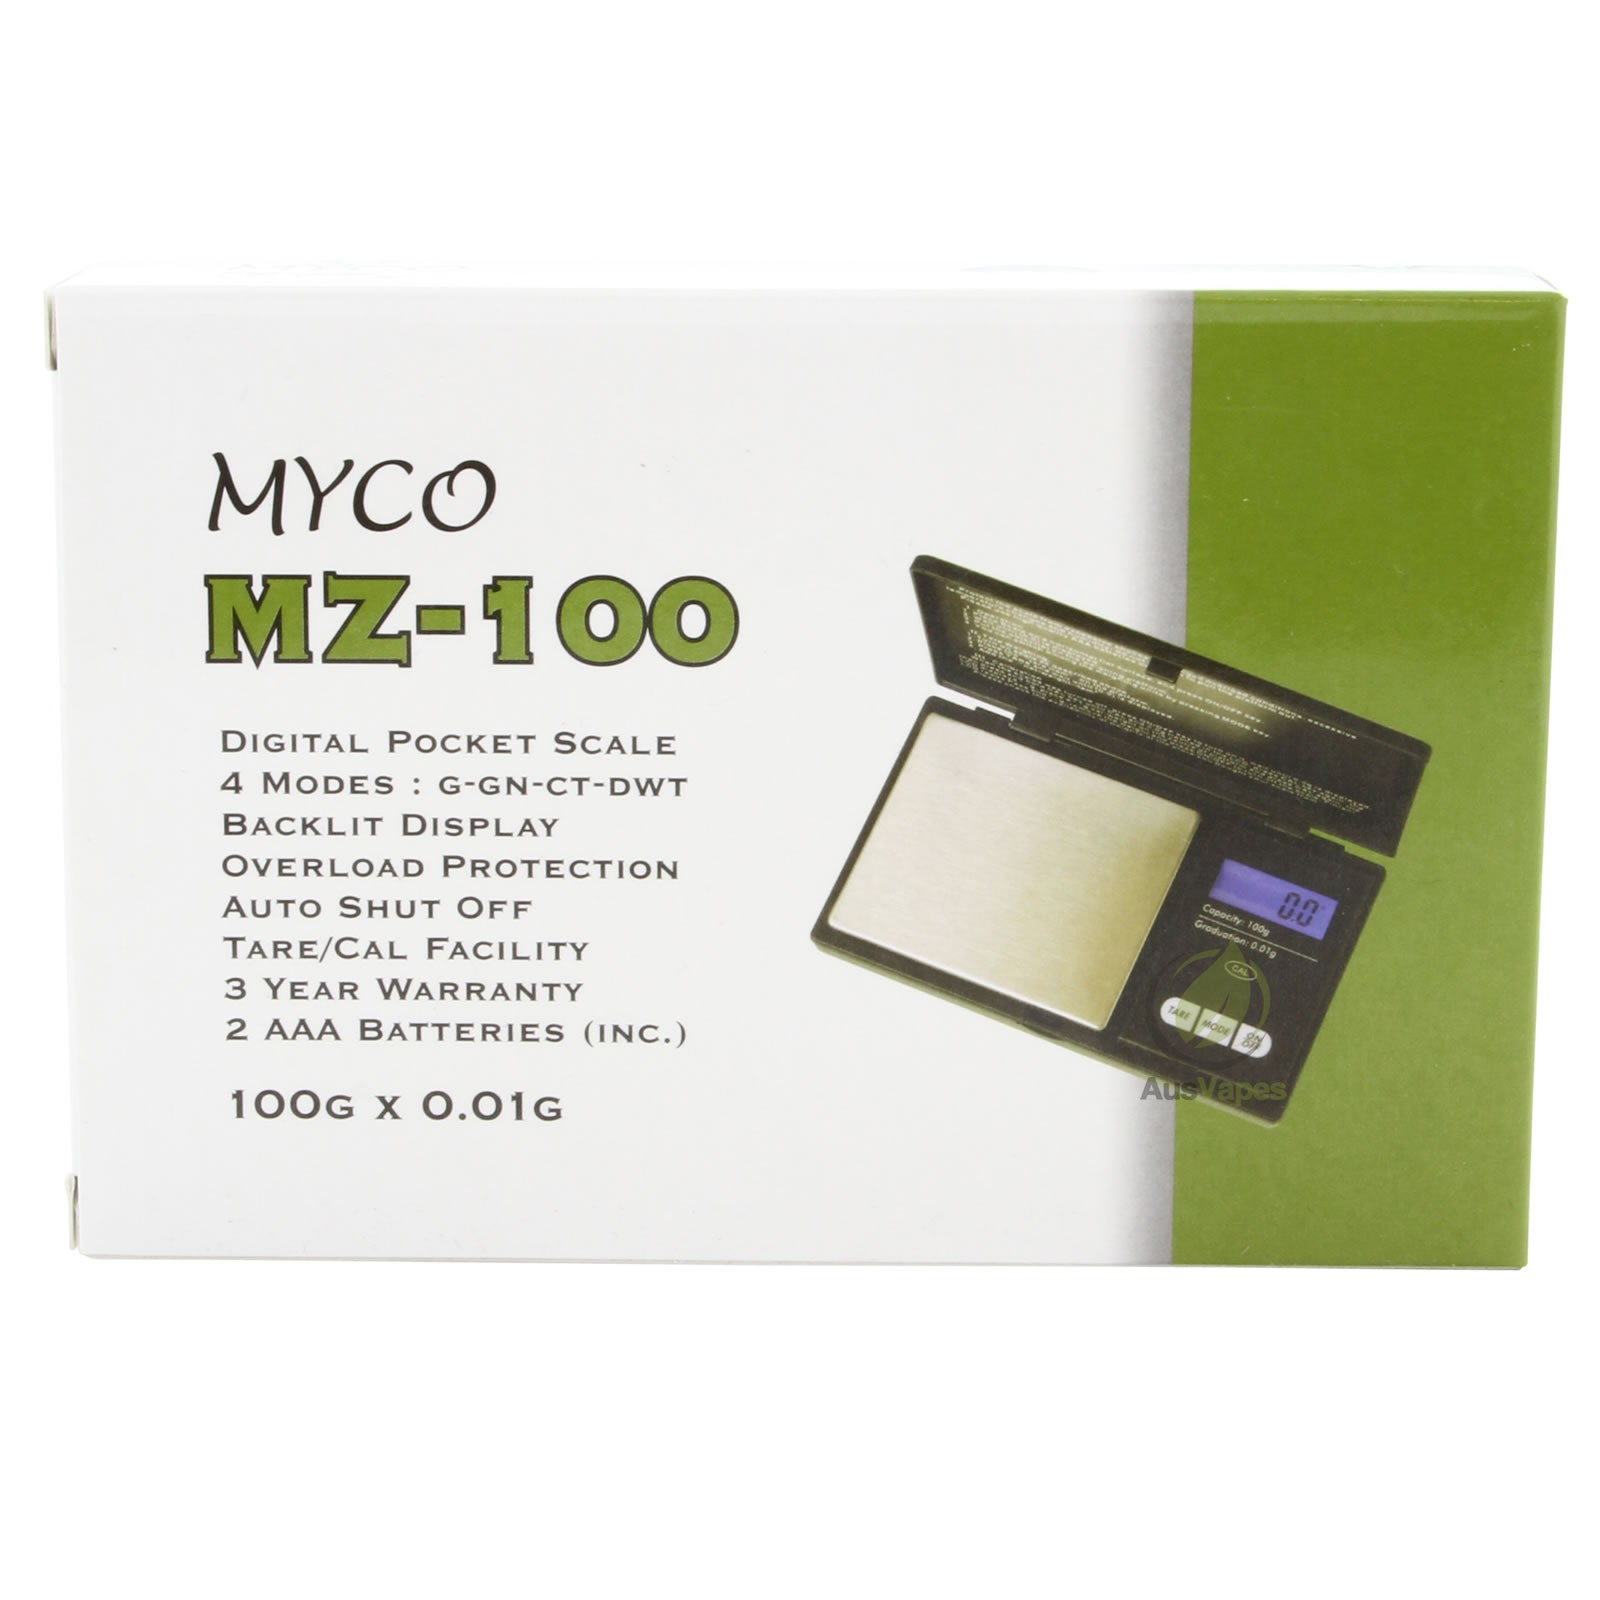 MYCO MZ-100 Digital Pocket Scale 0.01 G